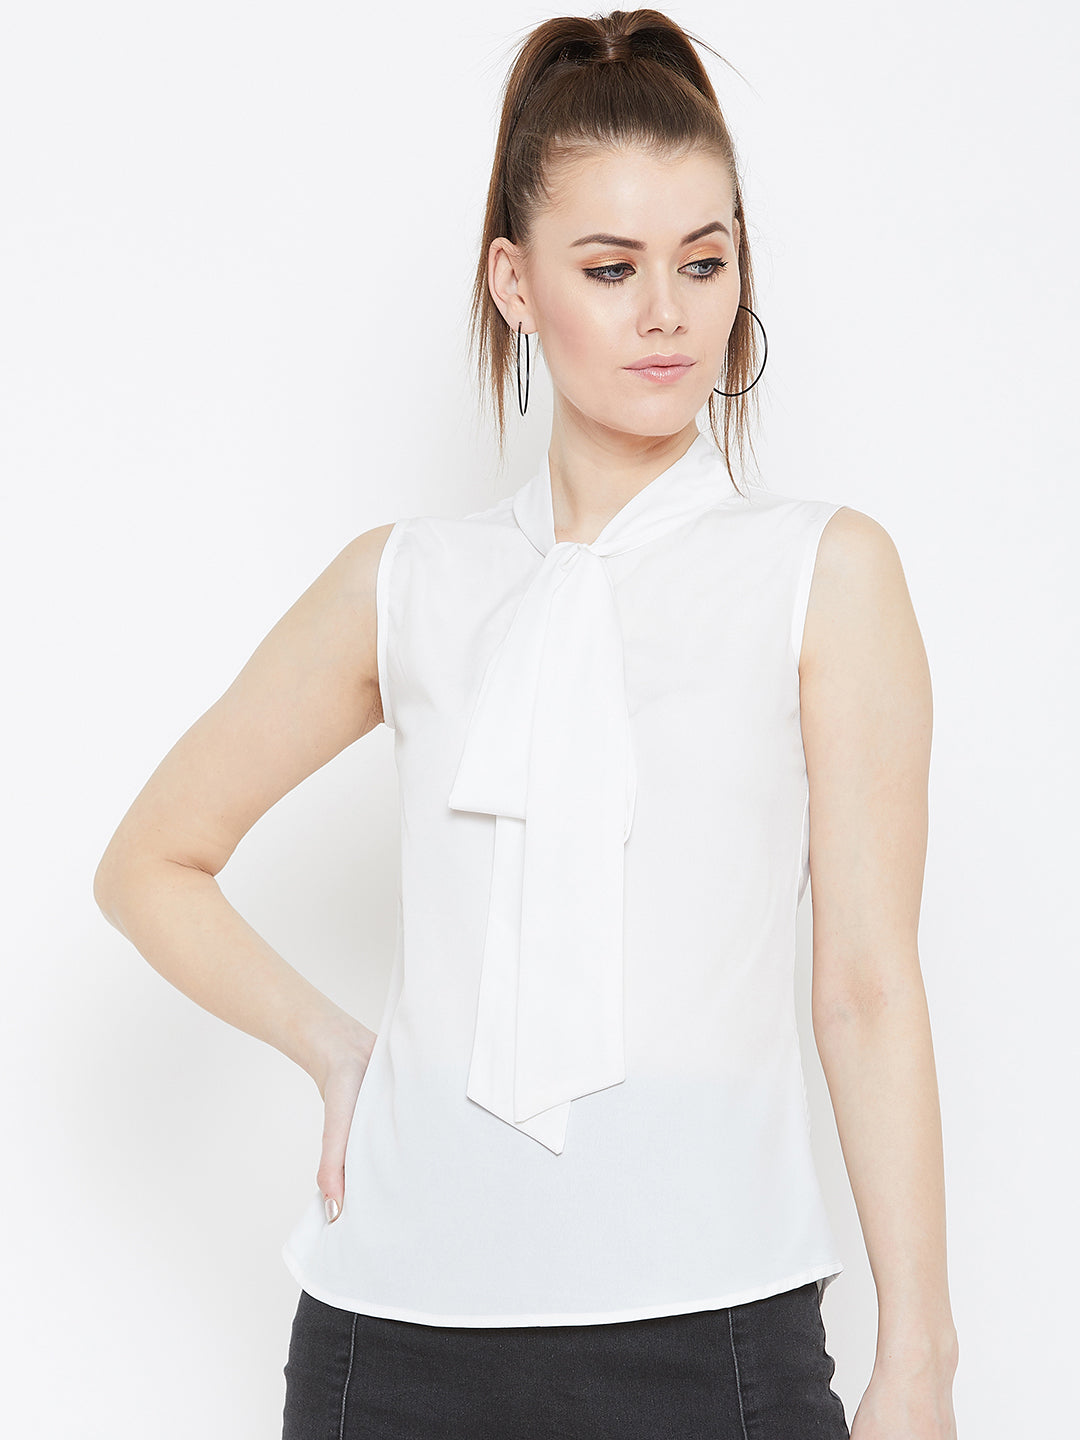 White sleeveless tie knot neck top